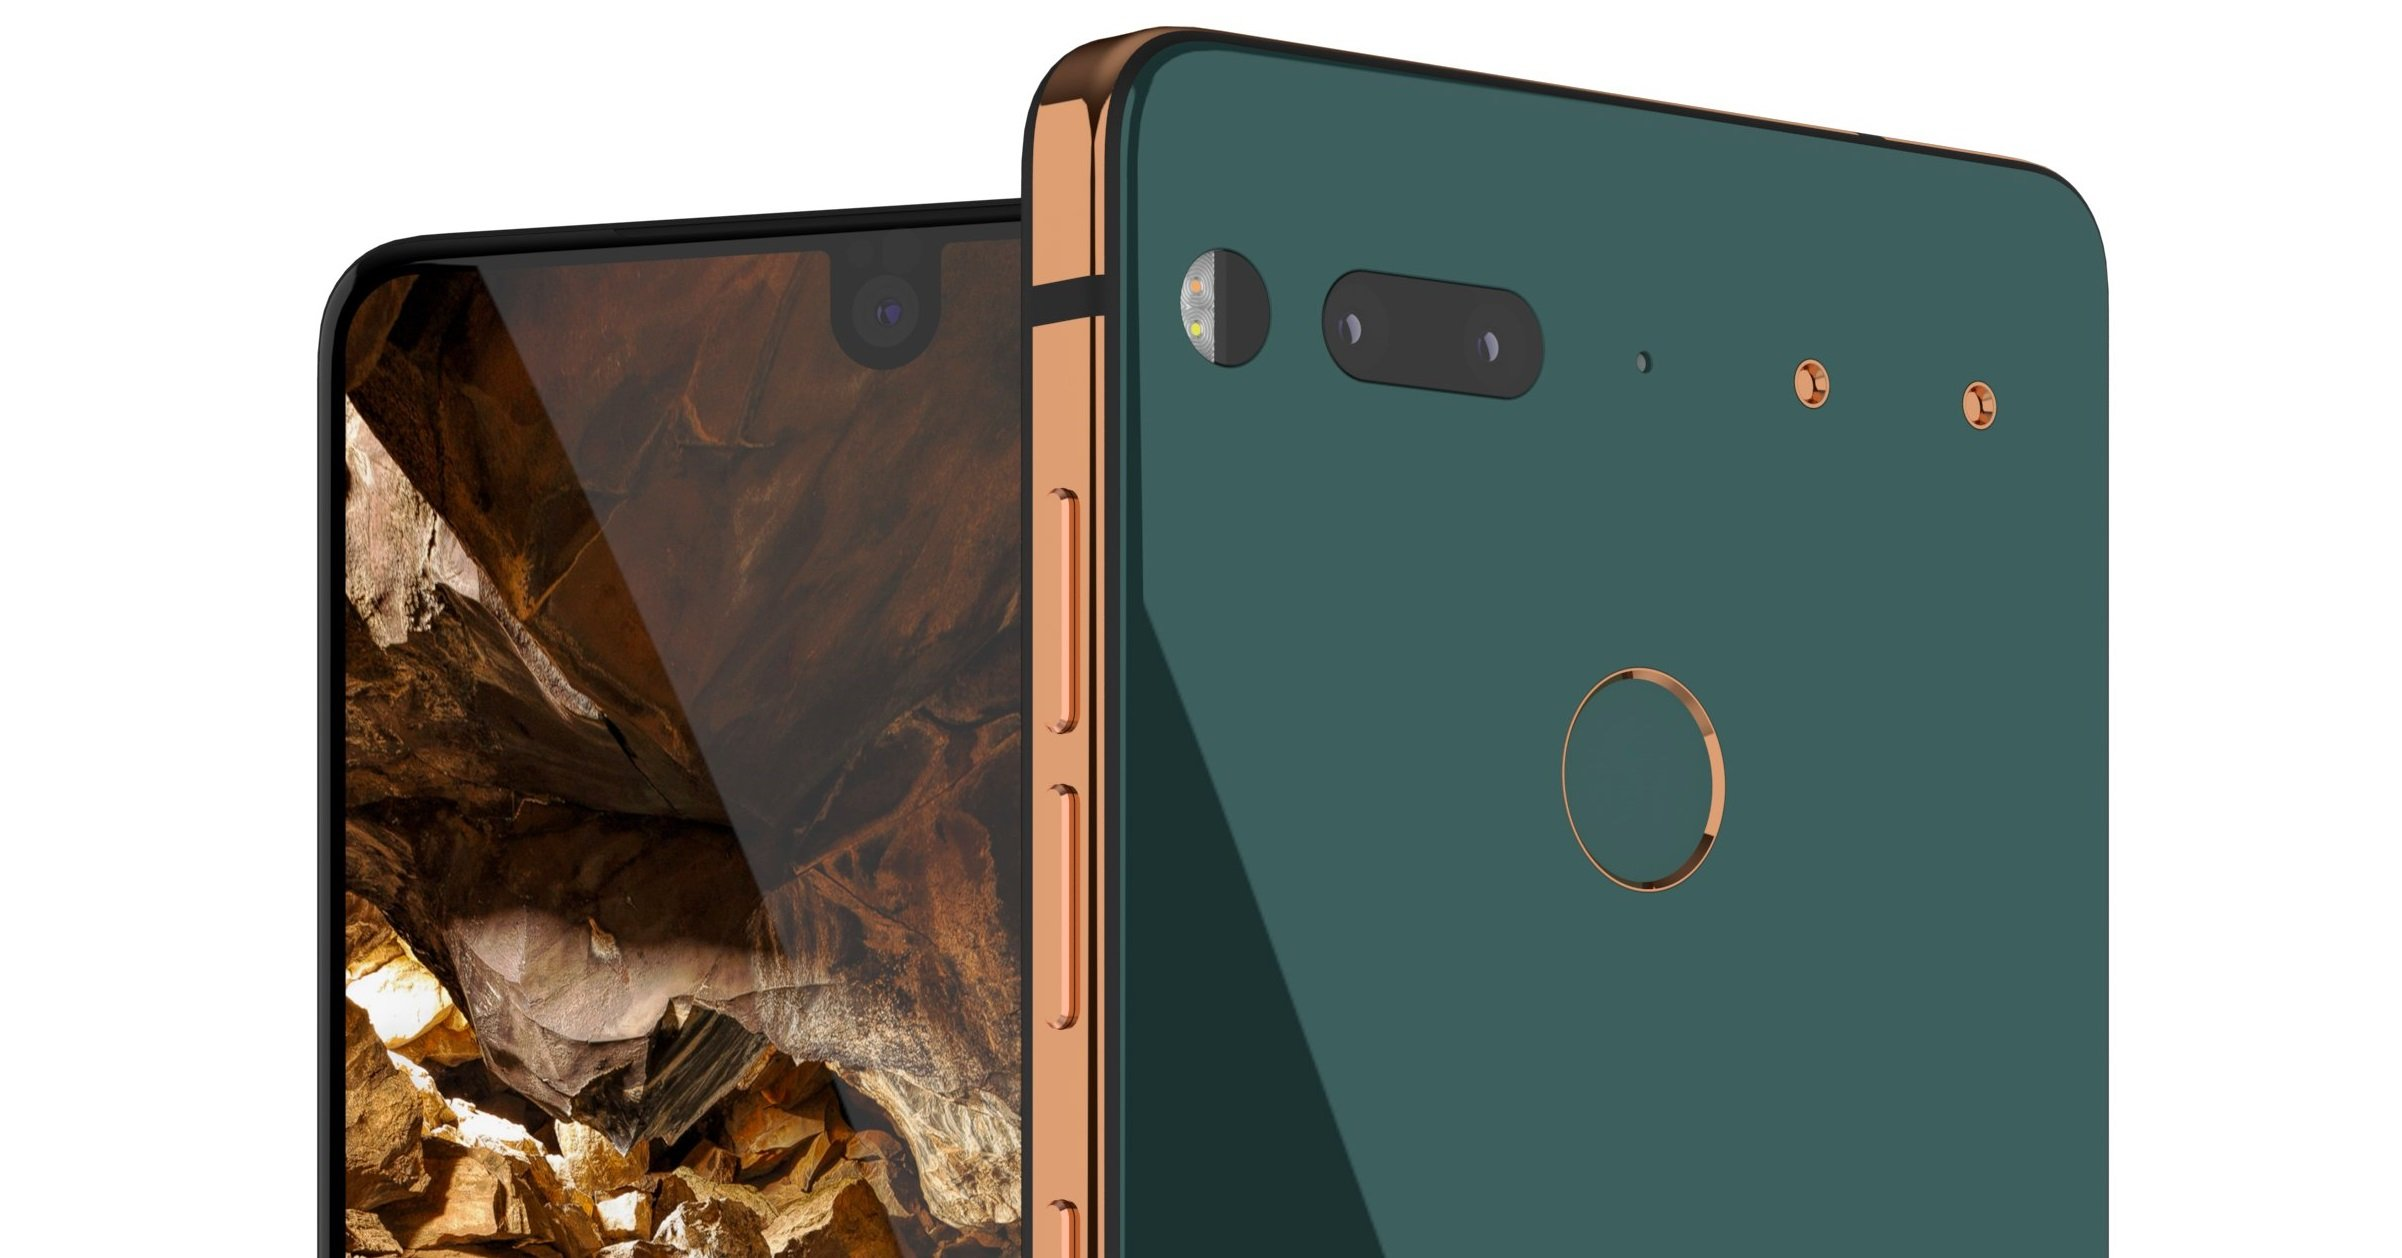 Andy Rubin S Essential Ph 1 Phone The New Iphone And